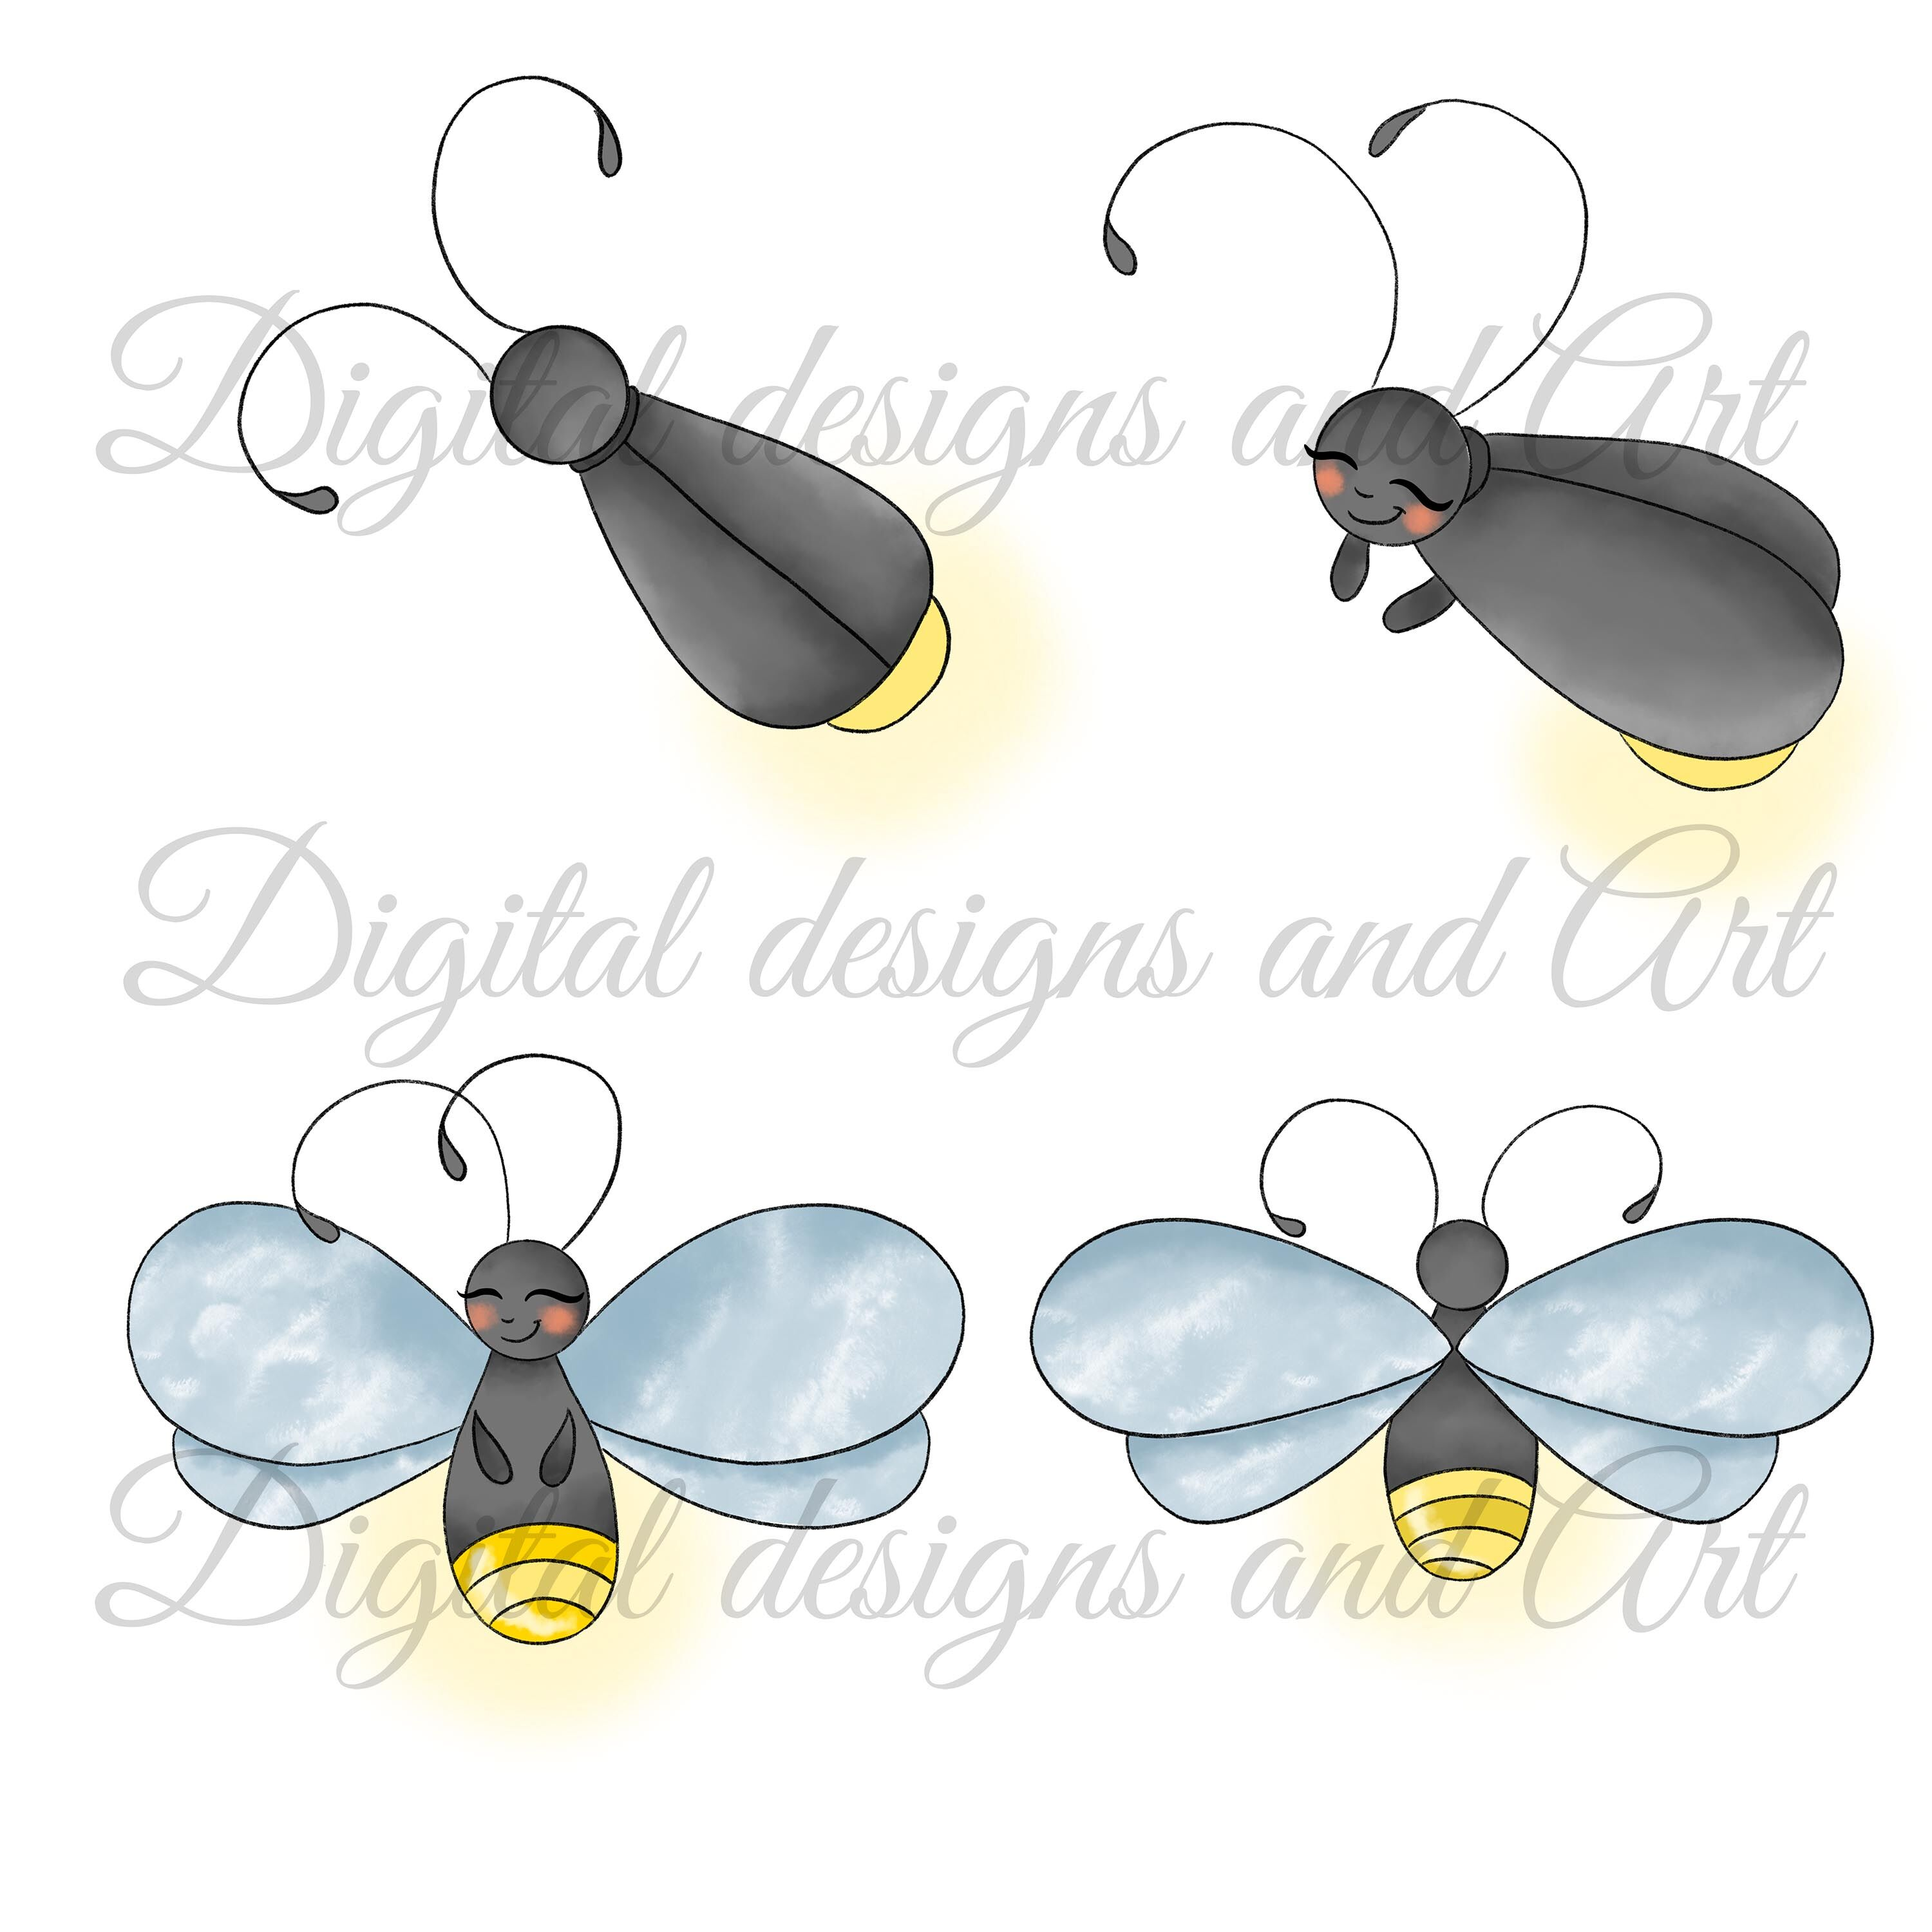 Cute firefly clipart picture library stock Cute firefly clipart By DigitalDesignsAndArt | TheHungryJPEG.com picture library stock